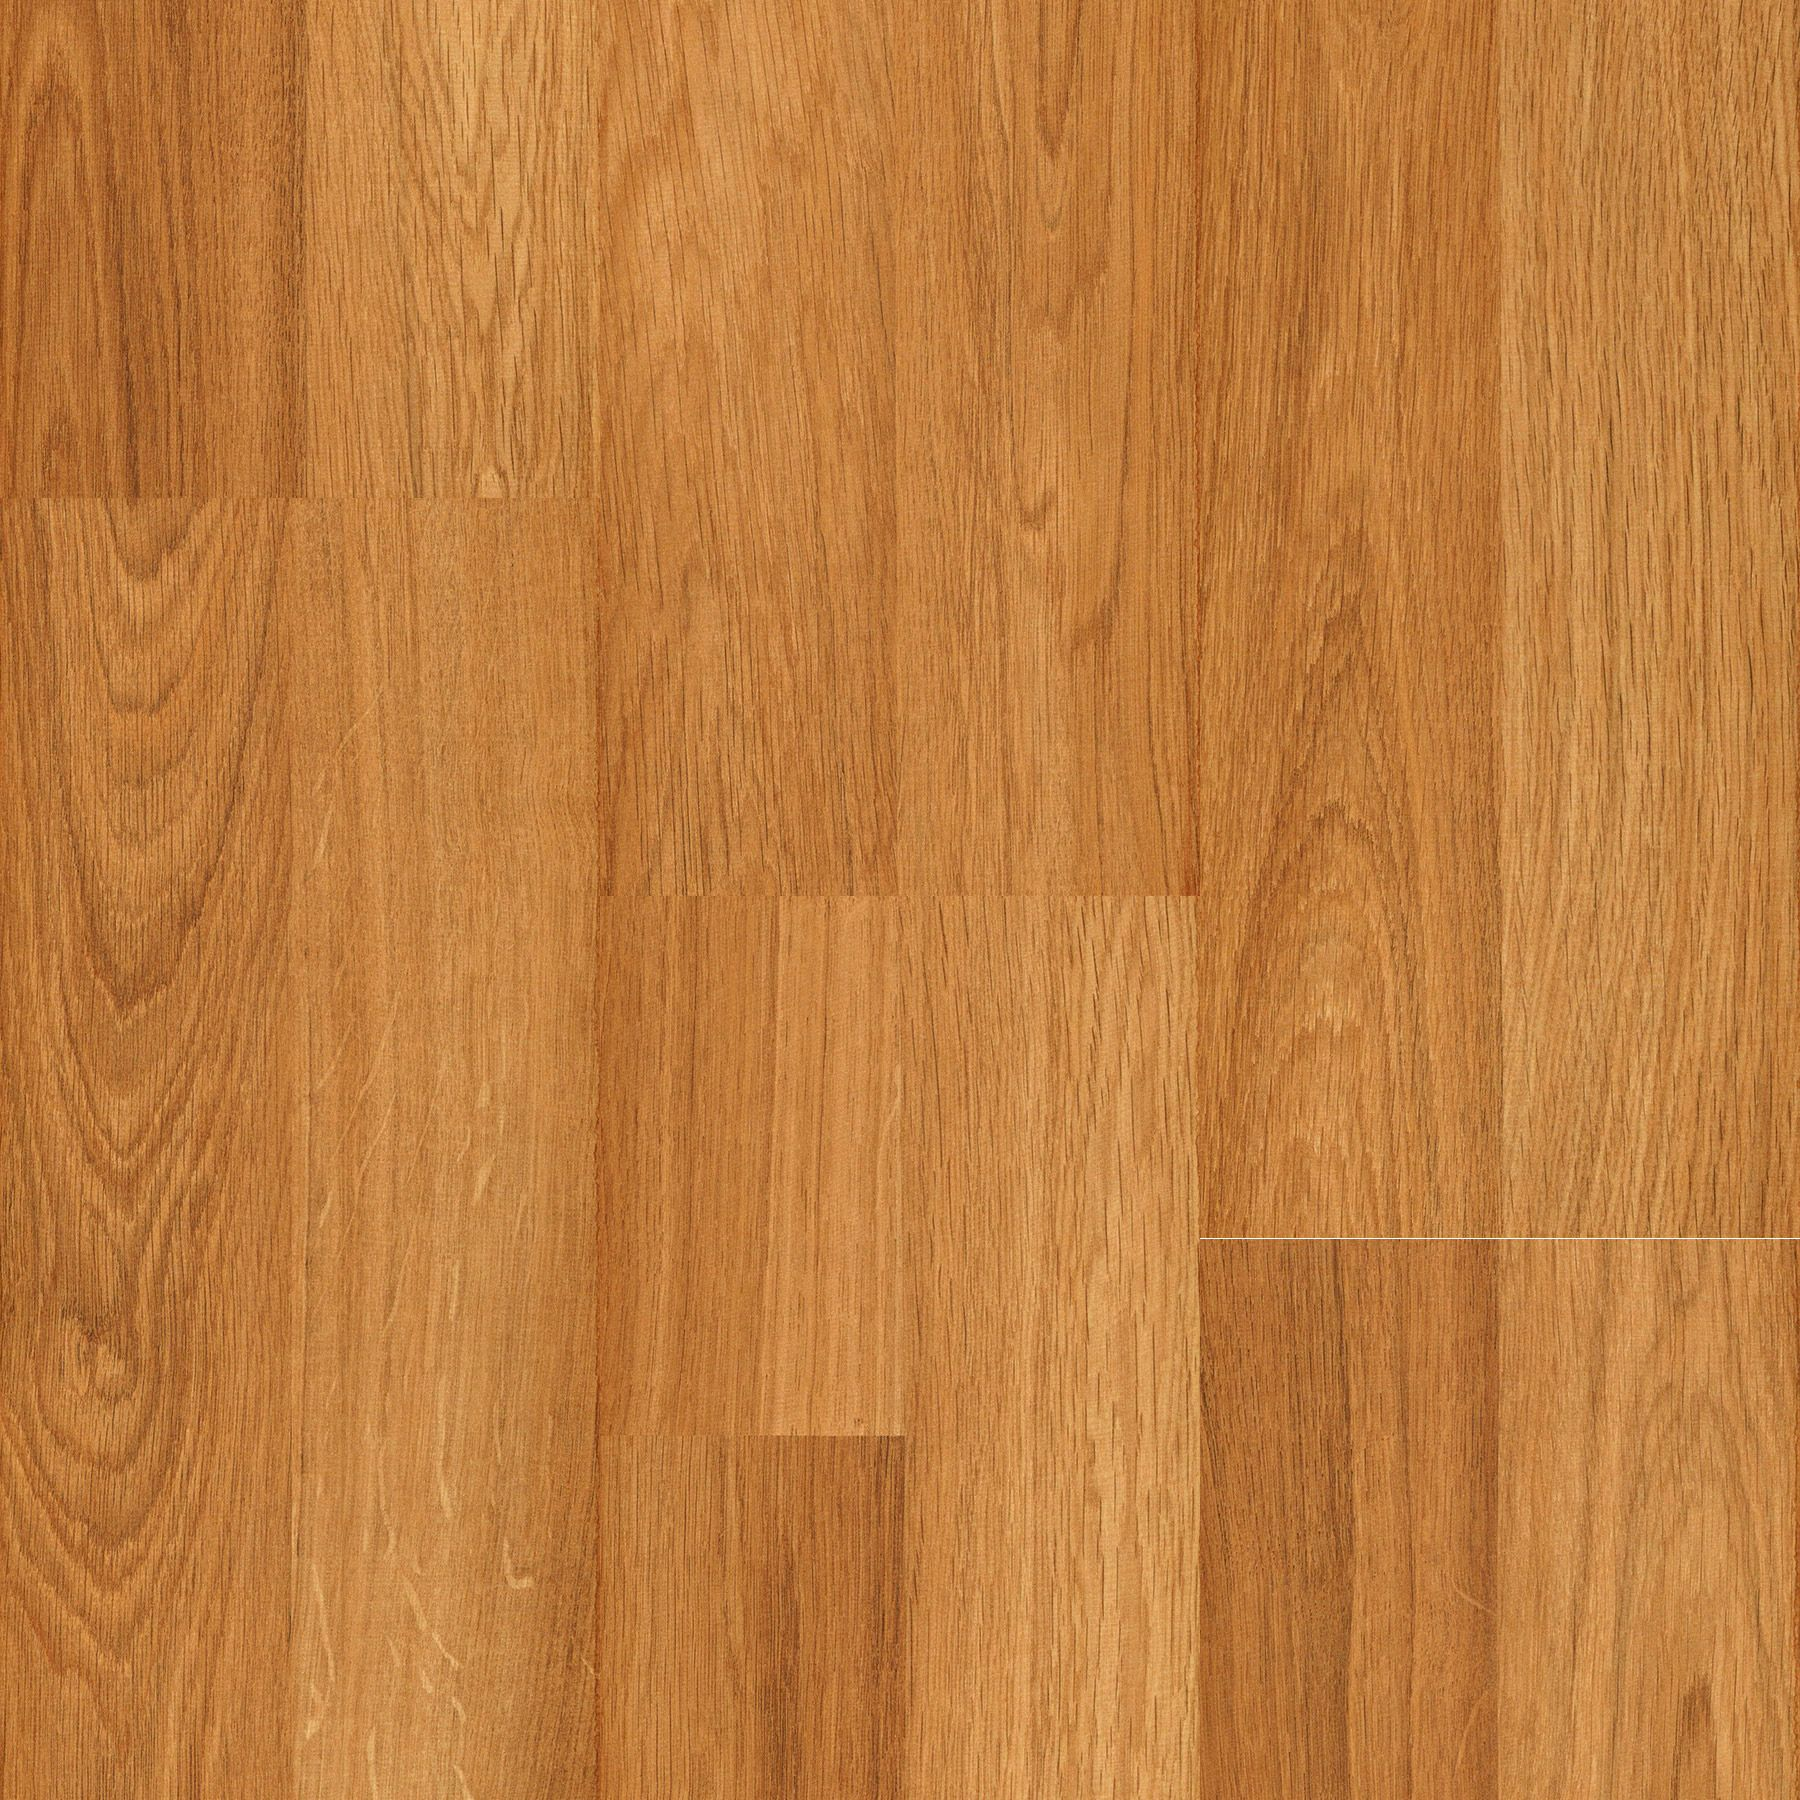 Formica Laminate Flooring elegant formica laminate flooring formica laminate flooring add elegance to your house floor and Formica Heirloom Oak Laminate With Free Pad